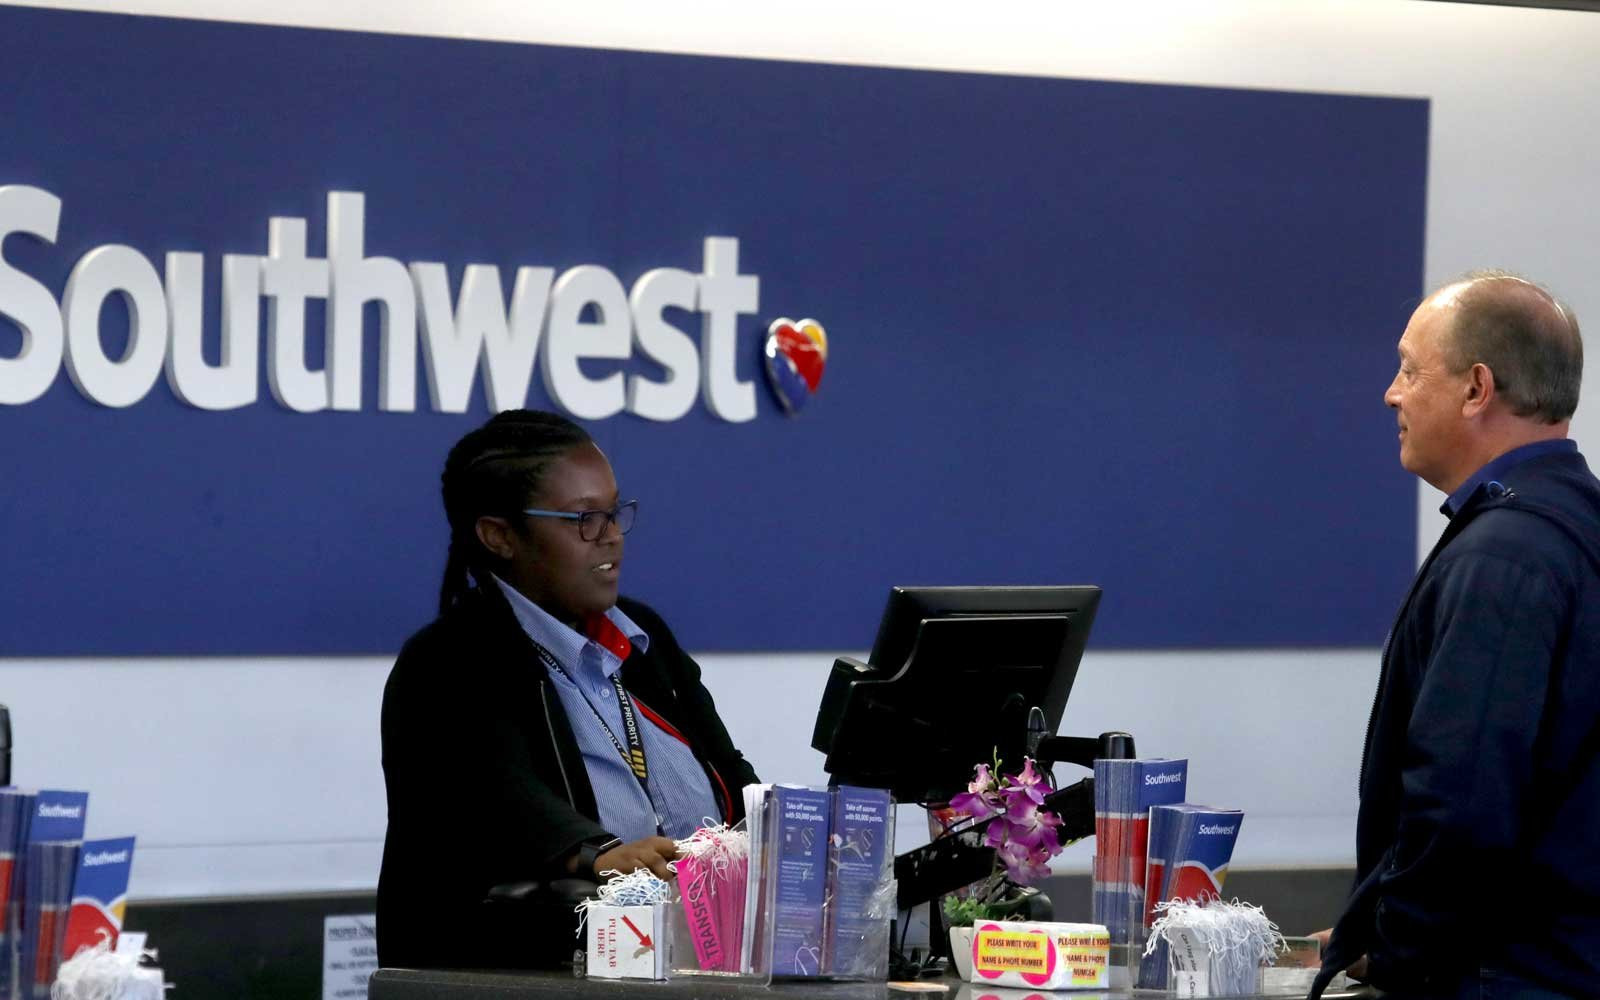 Southwest is discontinuing its discounted fares for senior citizens